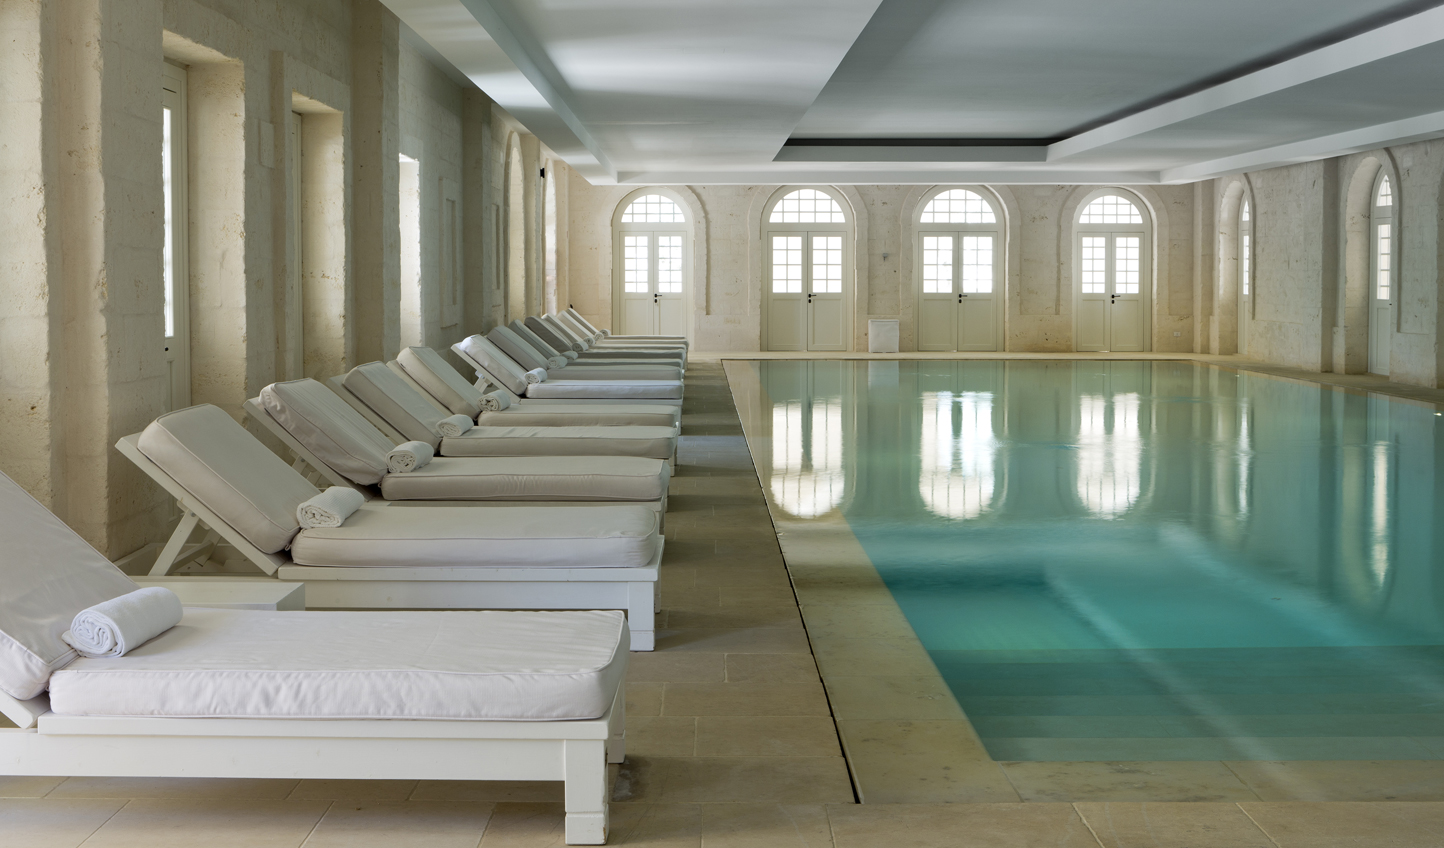 Take a dip in the spa pool after your treatment